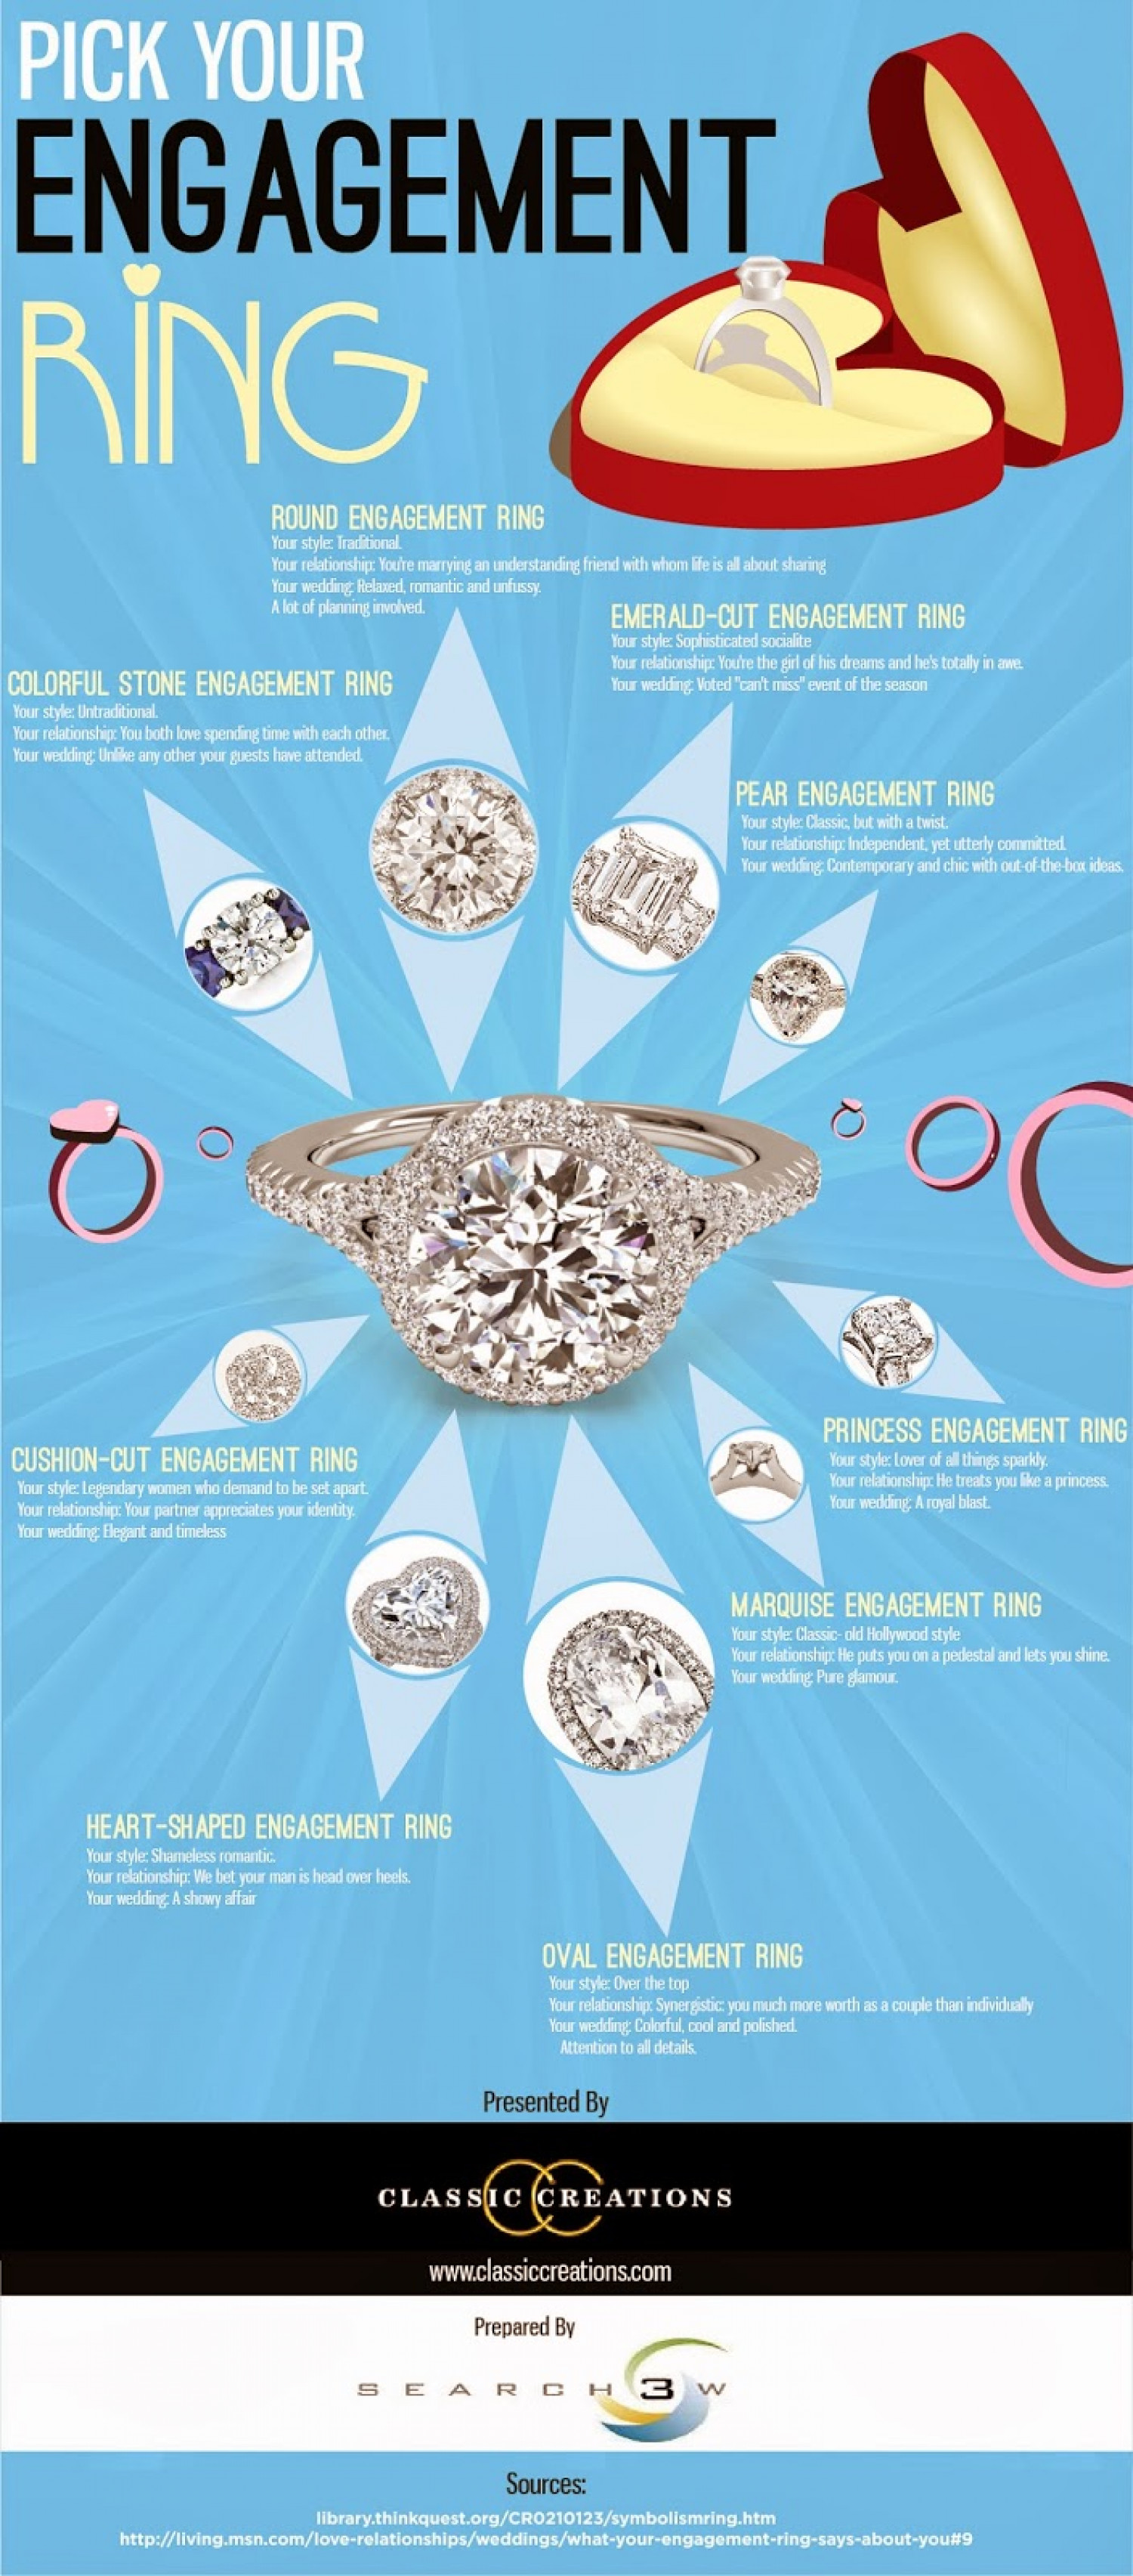 Pick Your Engagement Ring Infographic